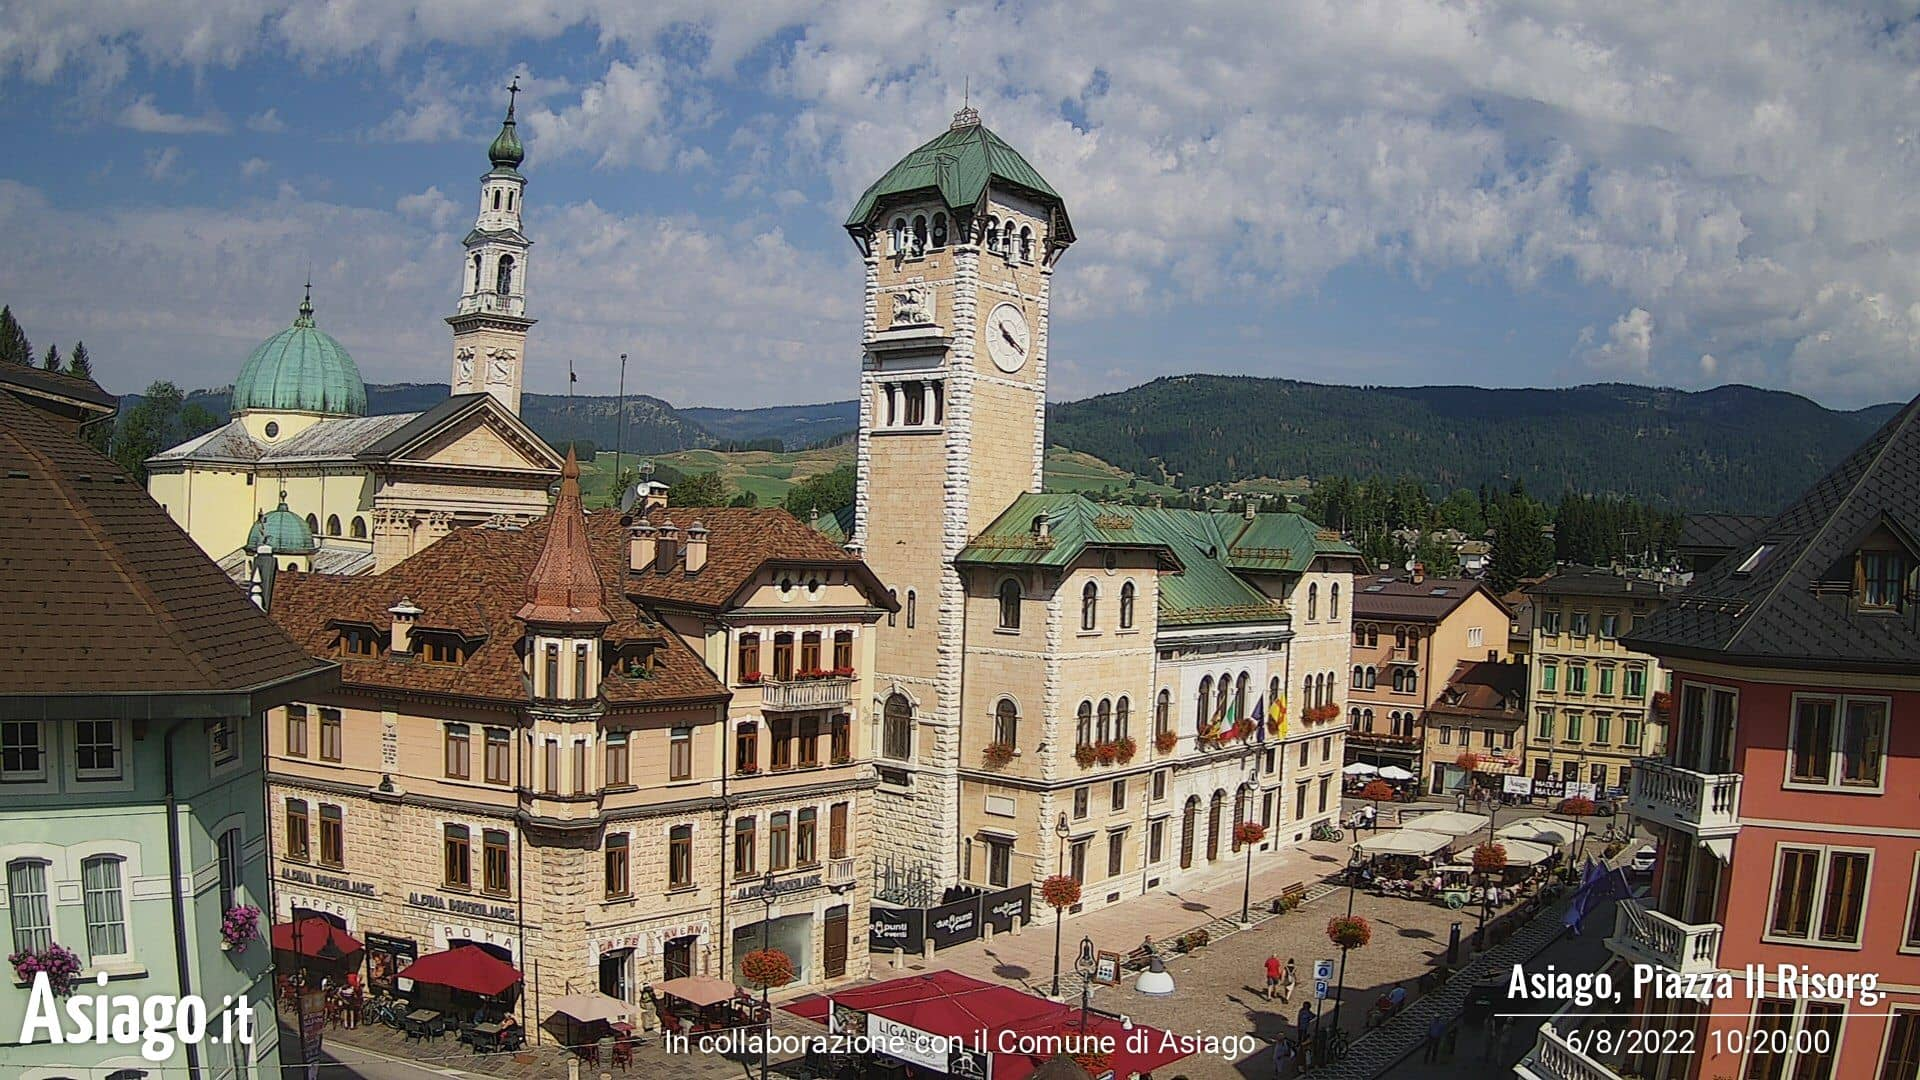 Webcam Asiago piazza II Risorgimento